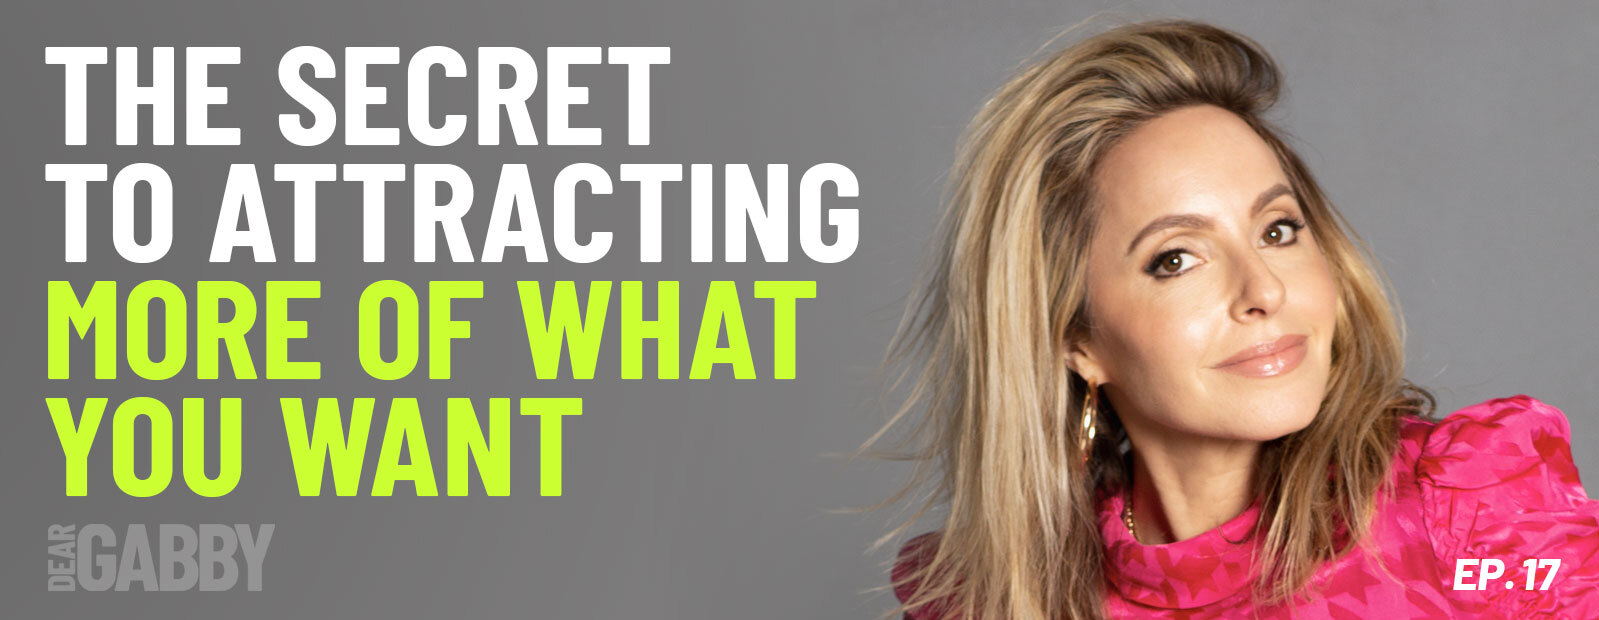 The Secret to Attracting MORE of What You Want